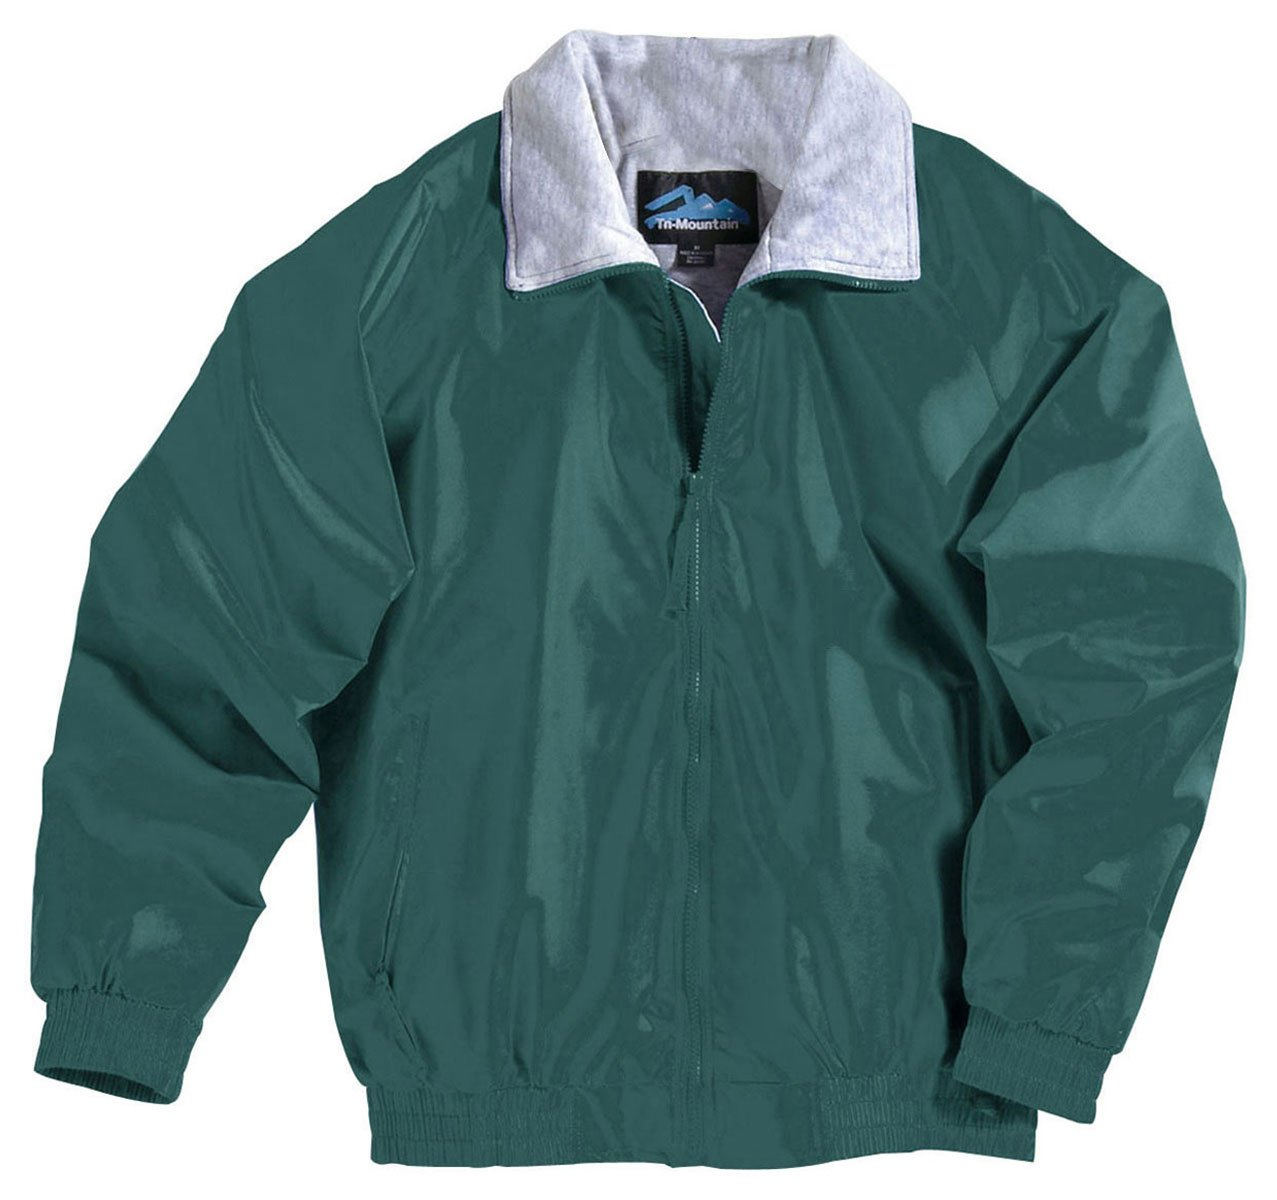 Tri-mountain Nylon jacket with jersey lining. - FOREST GREEN - Large